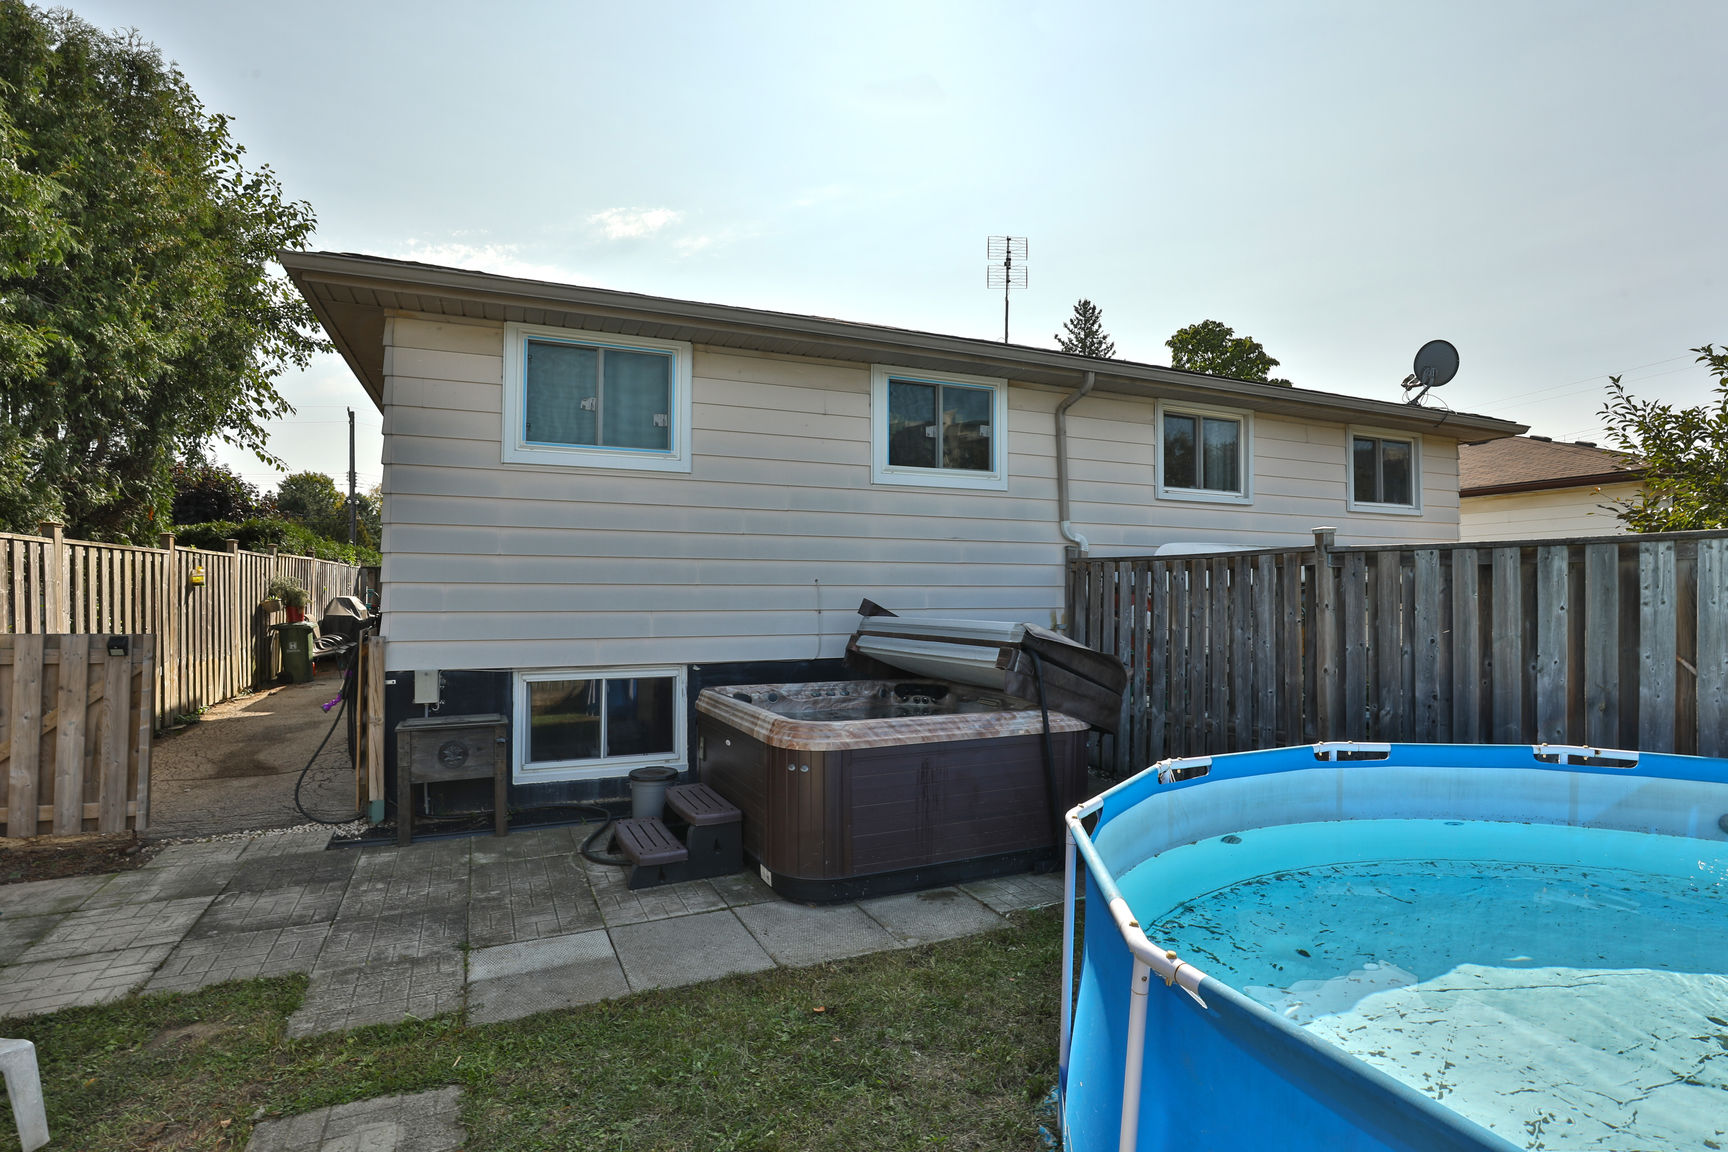 23 - Recently SOLD in Rosedale